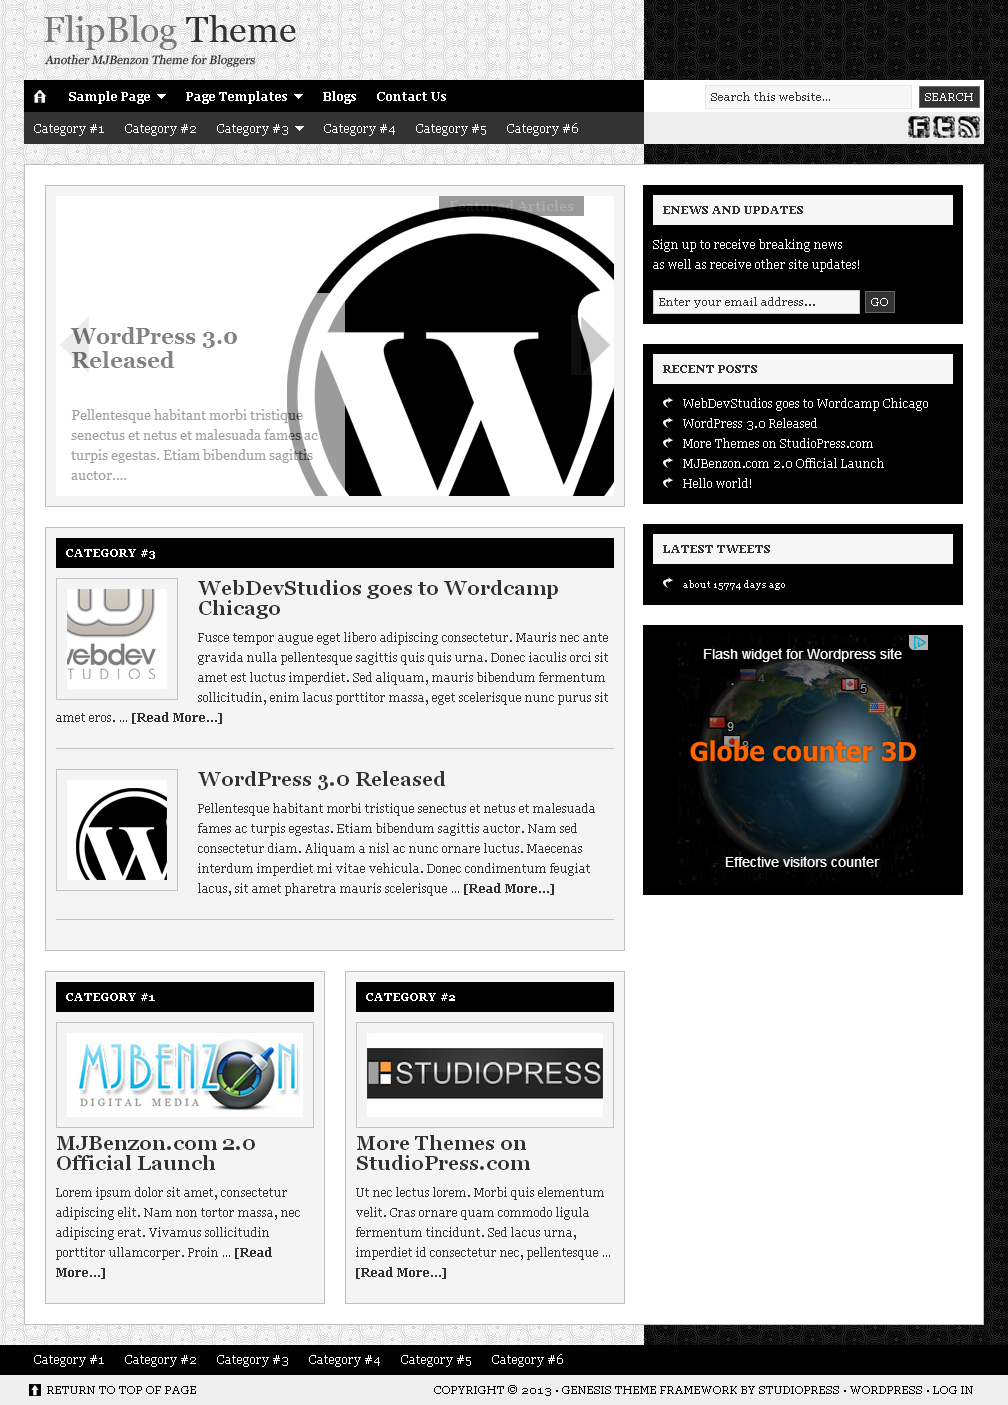 Another MJBenzon Theme for Bloggers - FlipBlog